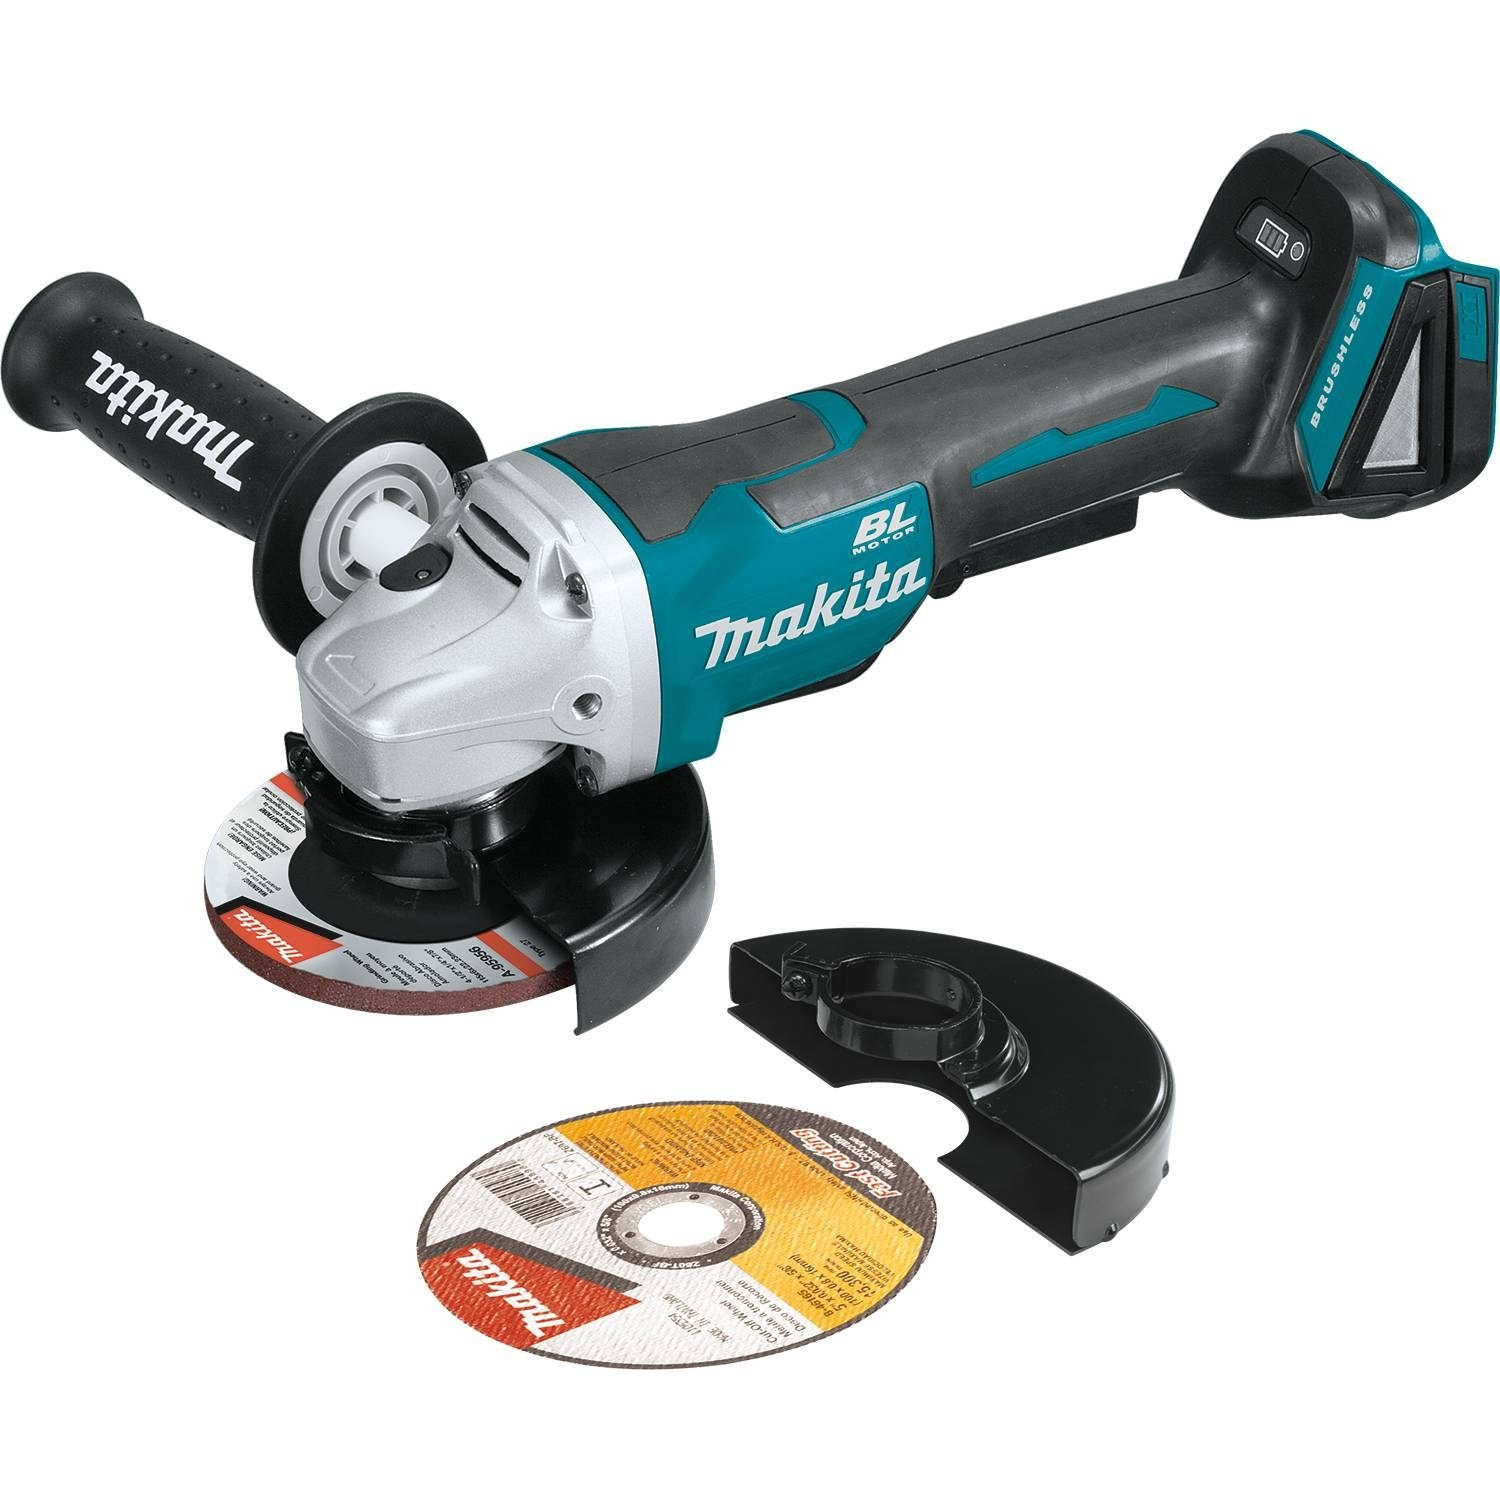 """Makita XAG11Z 18V LXT Lithium-Ion Brushless Cordless 4-1/2"""" / 5'' Paddle Switch Cut-Off/Angle Grinder with Electric Brake - Tool Only"""